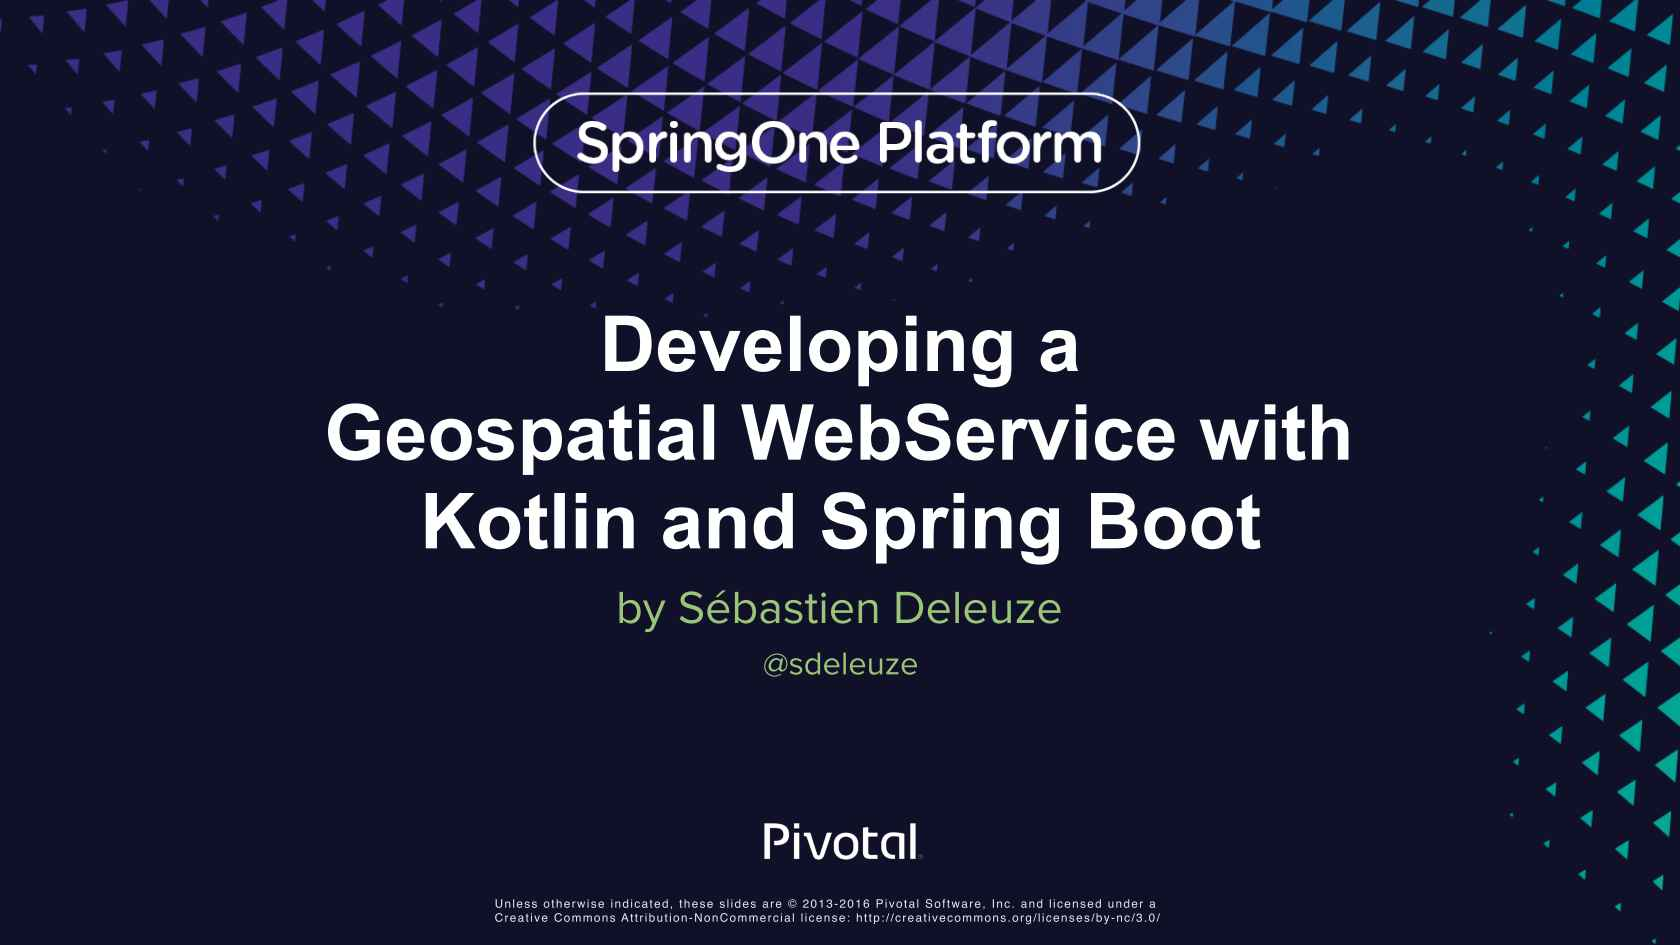 Developing a Geospatial Webservice with Kotlin and Spring Boot